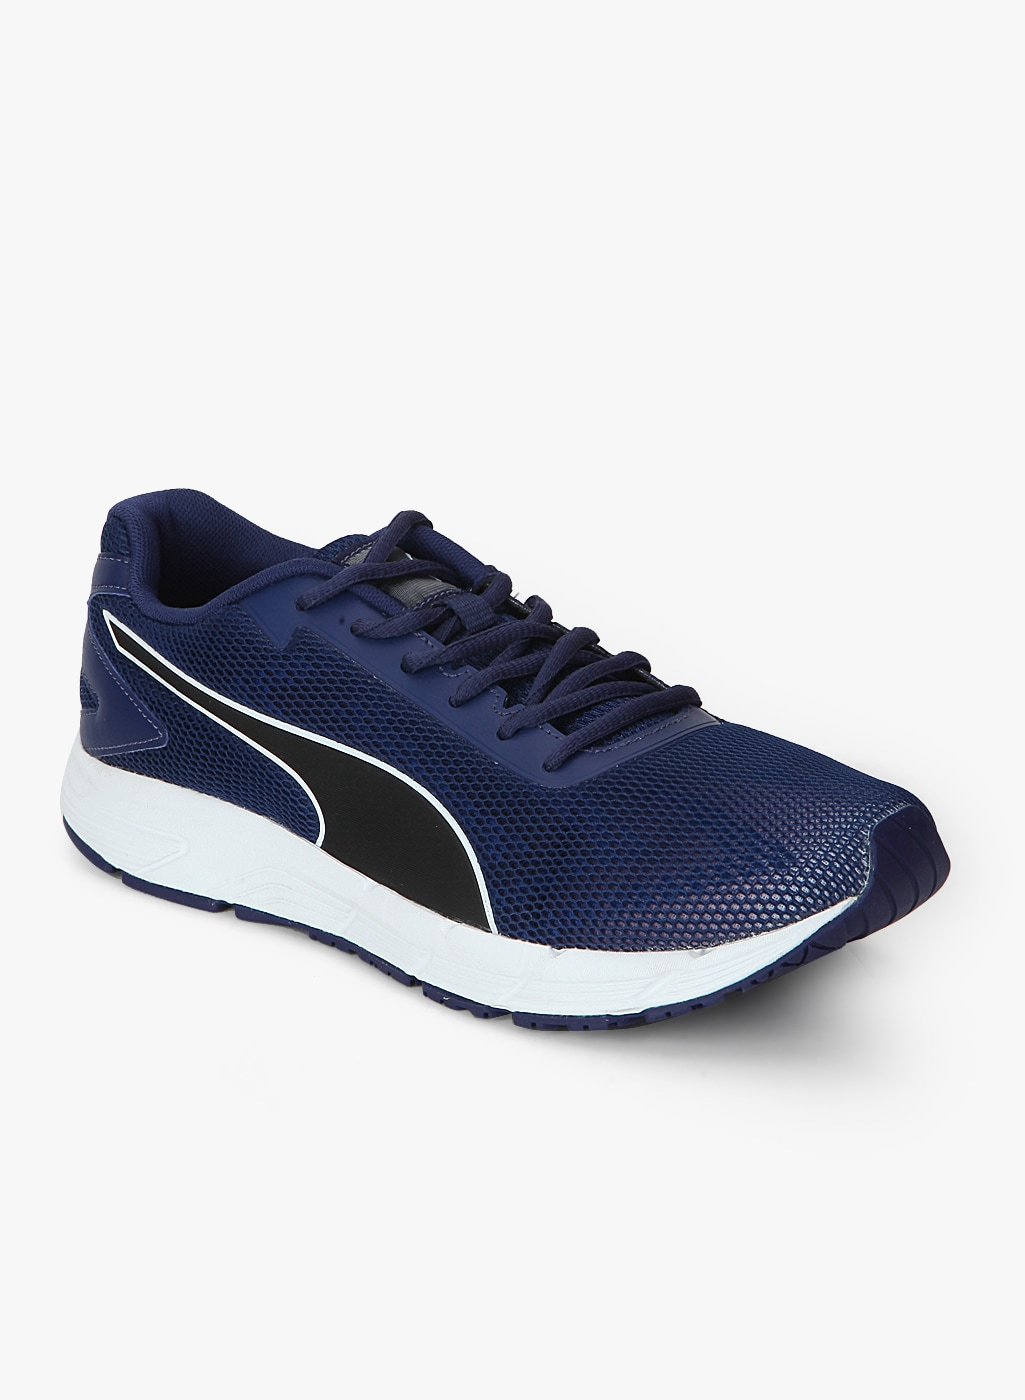 Puma Engine Idp Navy Blue Running Shoes